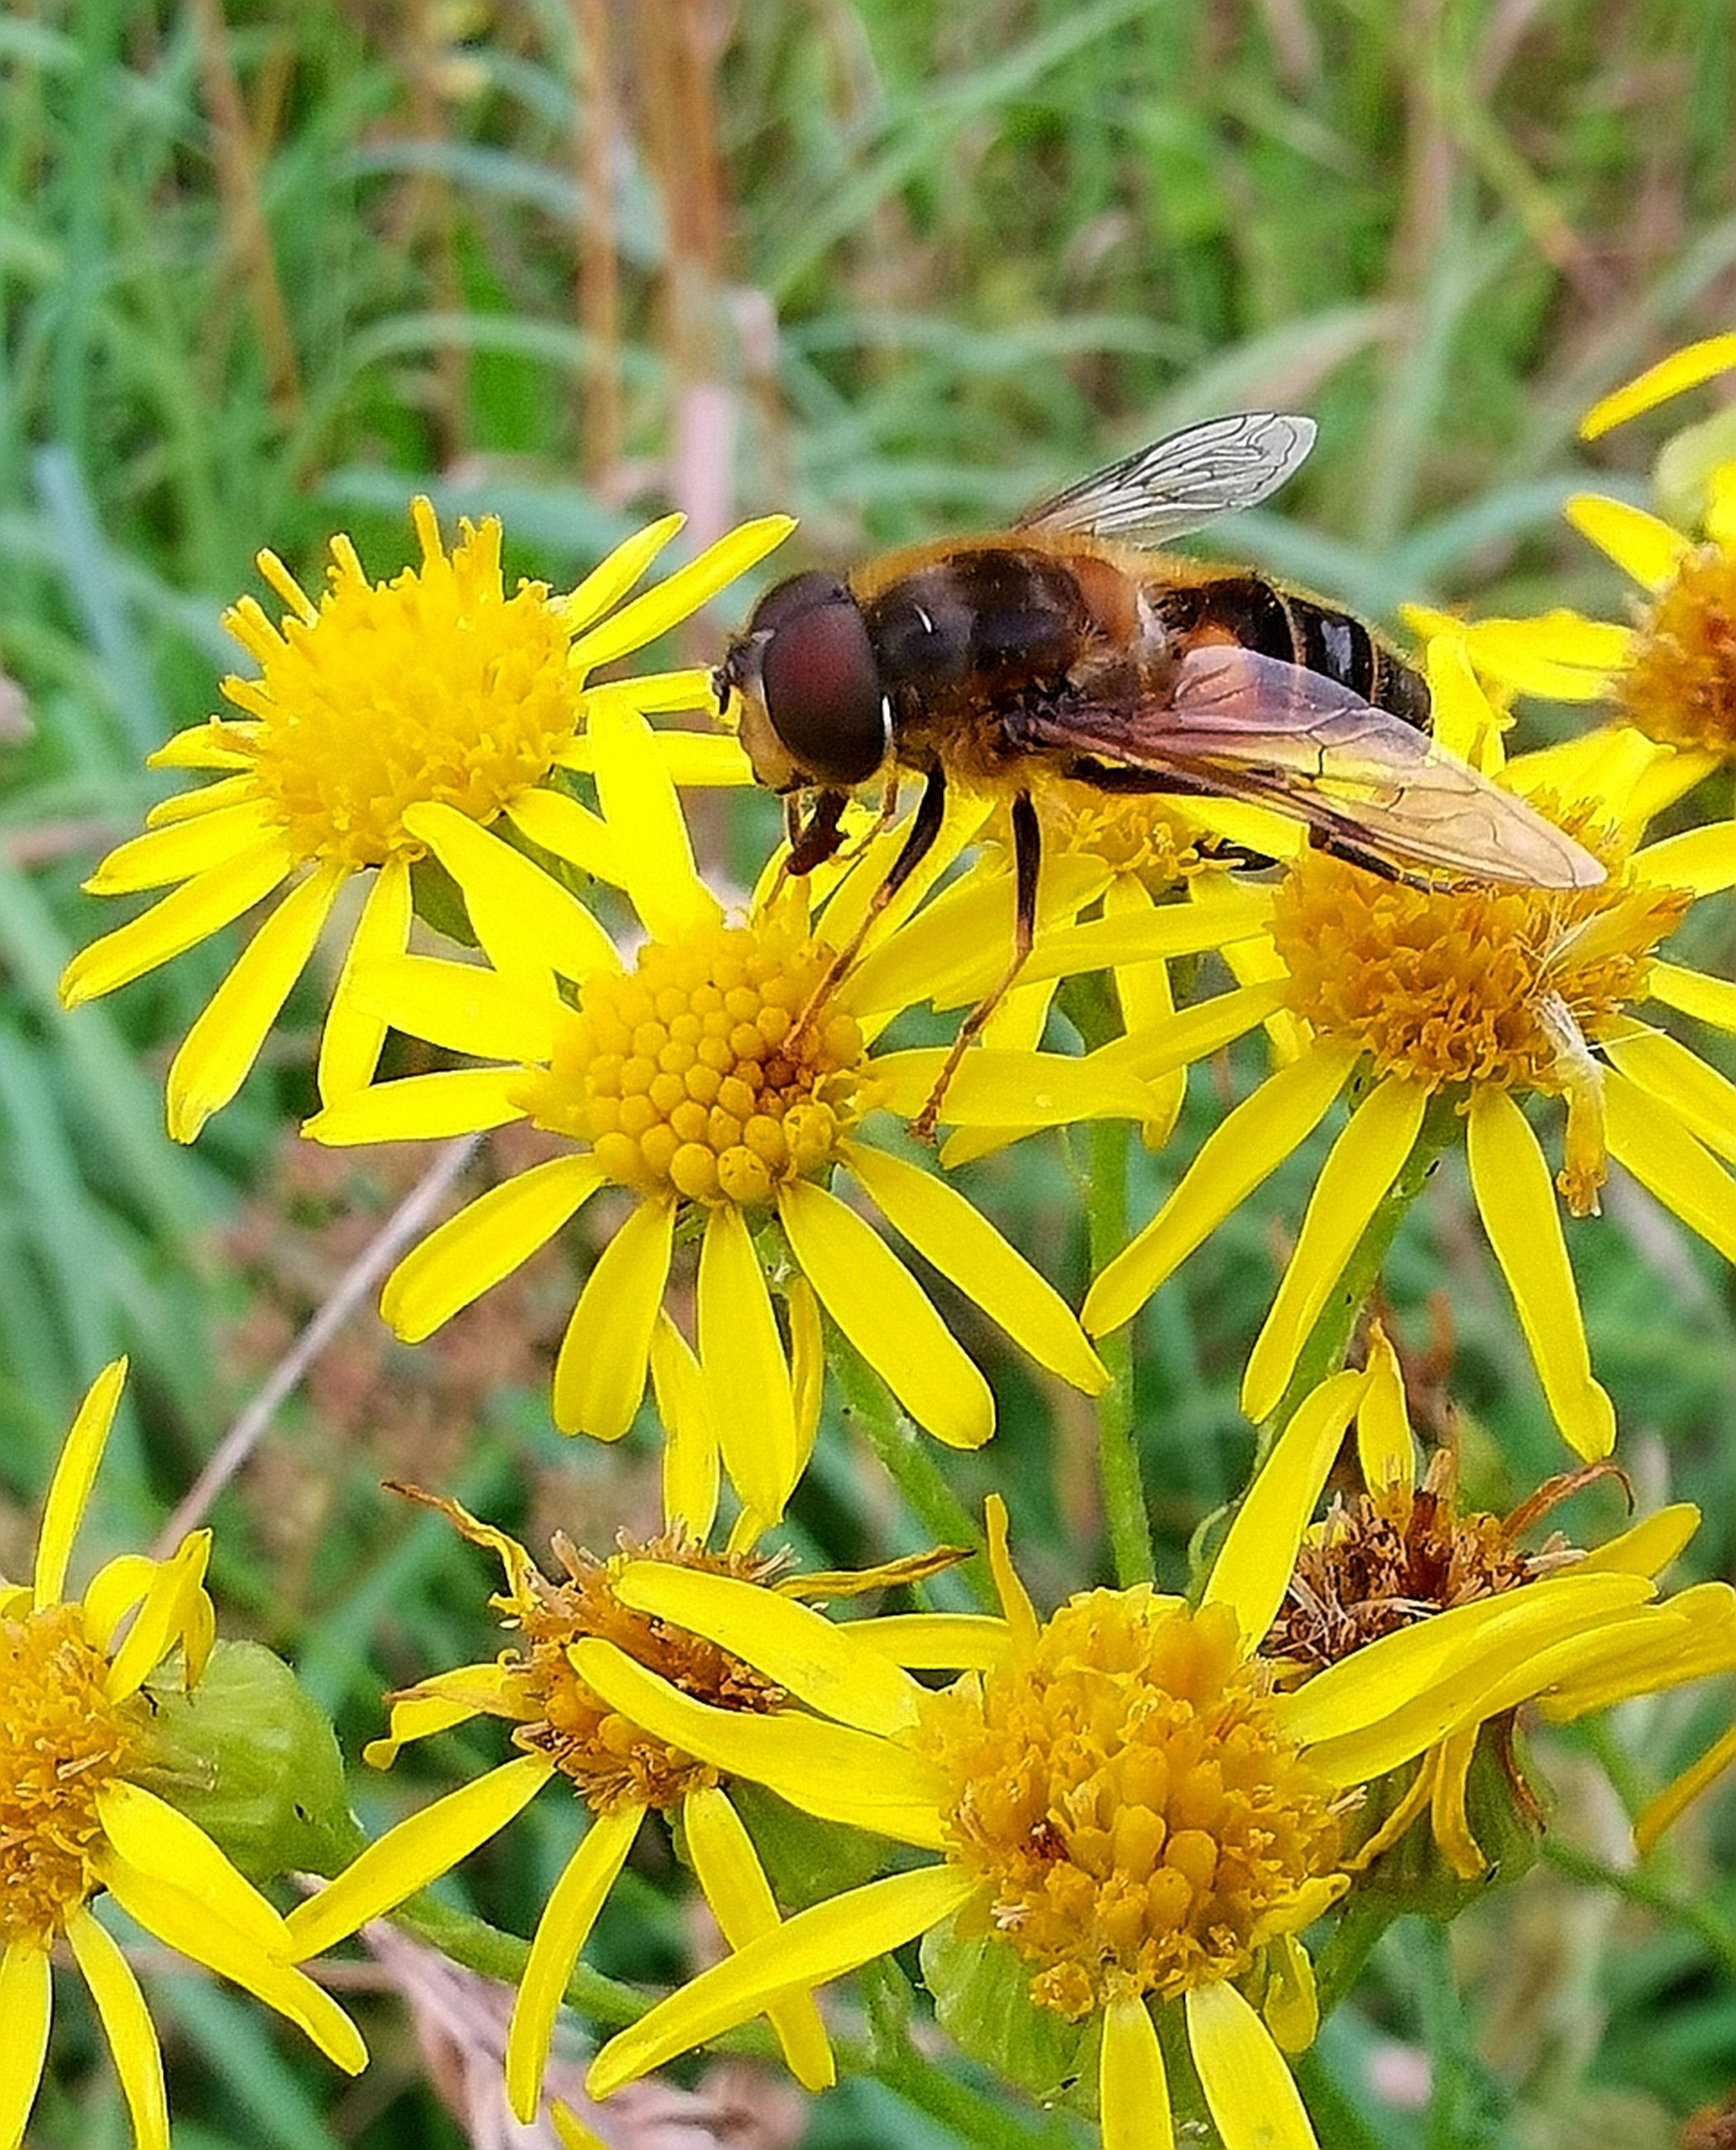 flower, flowering plant, animal themes, animal, animals in the wild, invertebrate, animal wildlife, insect, one animal, fragility, petal, yellow, vulnerability, plant, beauty in nature, growth, flower head, freshness, bee, inflorescence, pollination, no people, pollen, outdoors